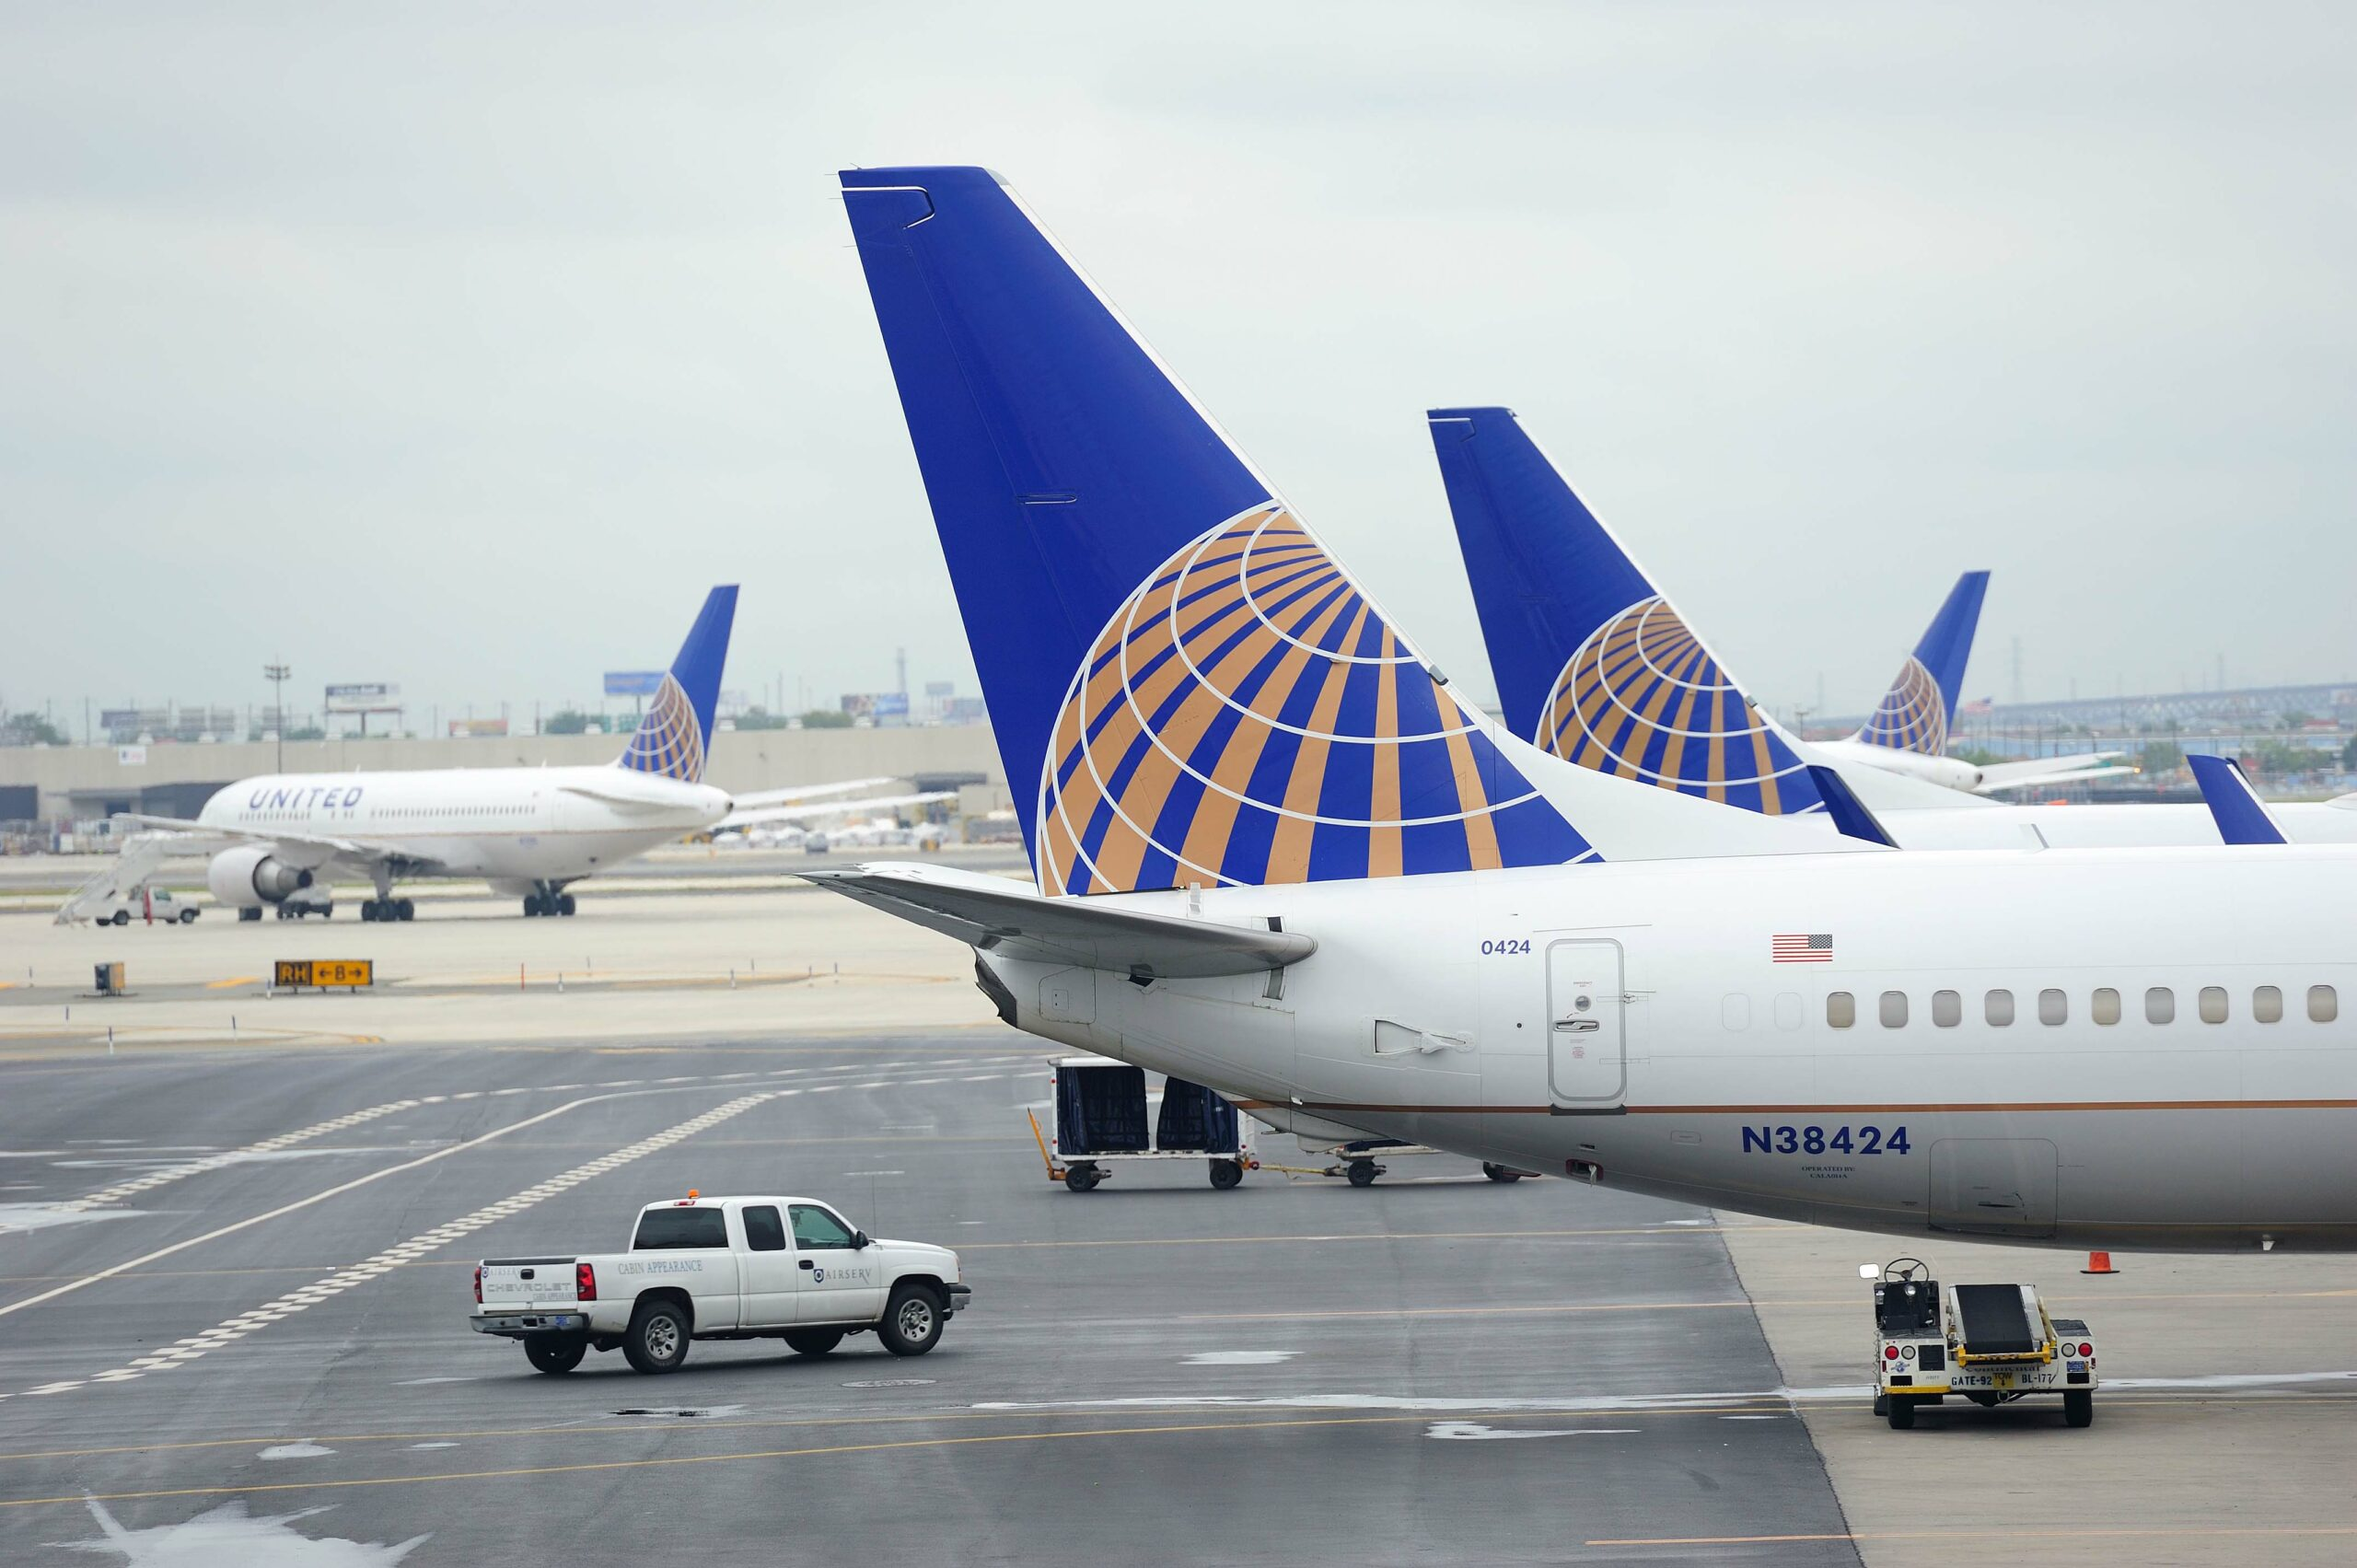 United Airlines reporting loss of $2 billion in Q4 2020 1